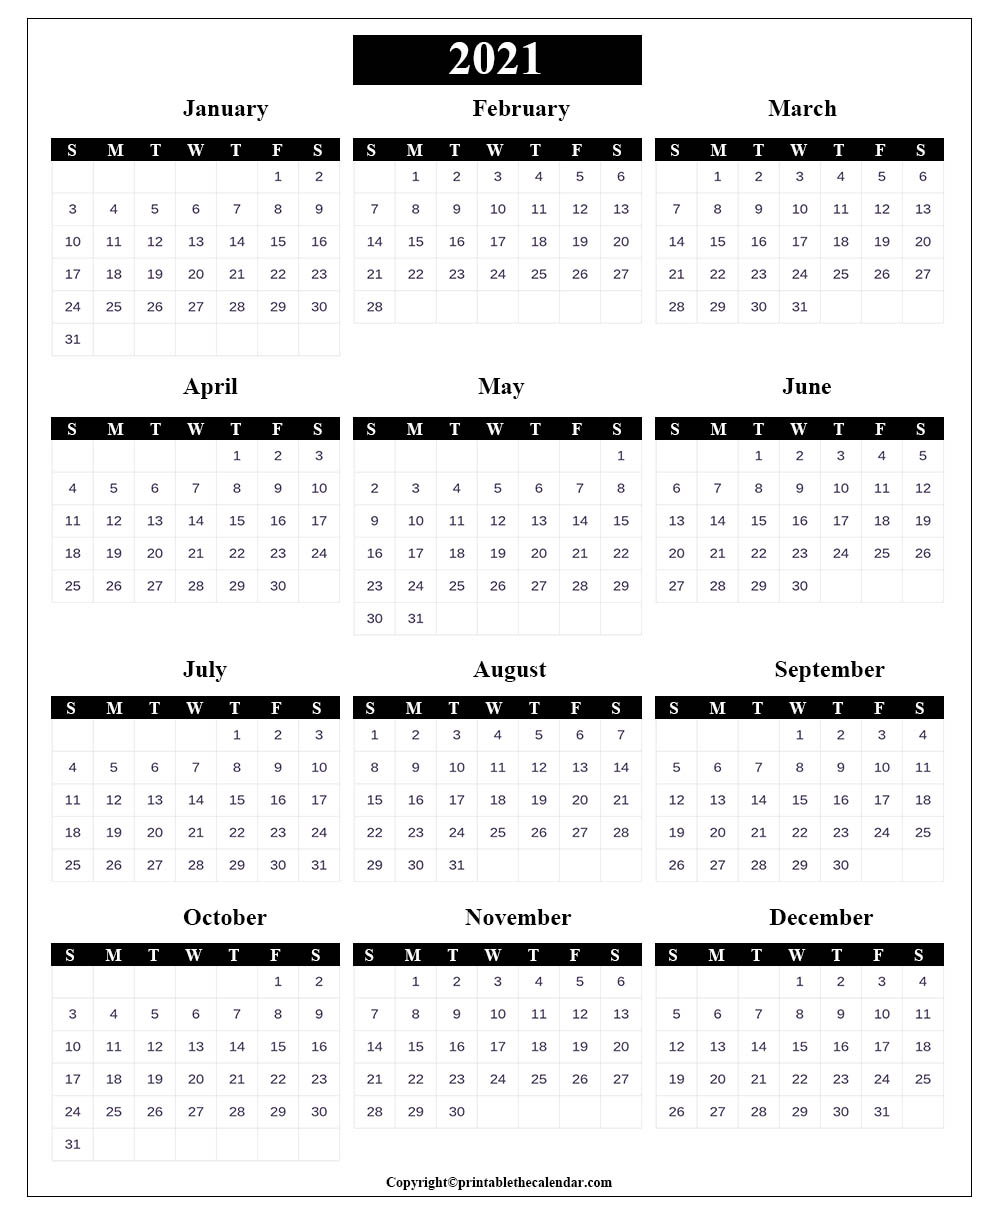 Blank Calendar 2021 with Holidays